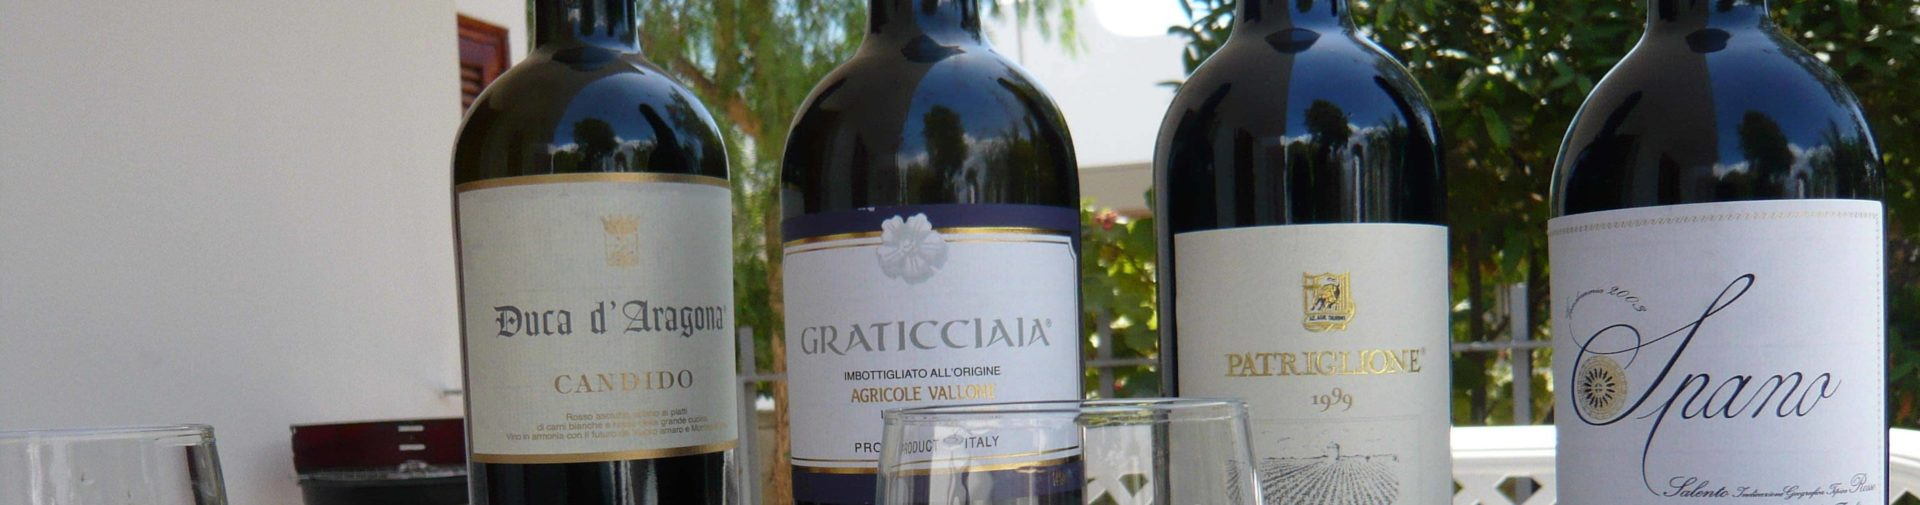 Wines from Puglia